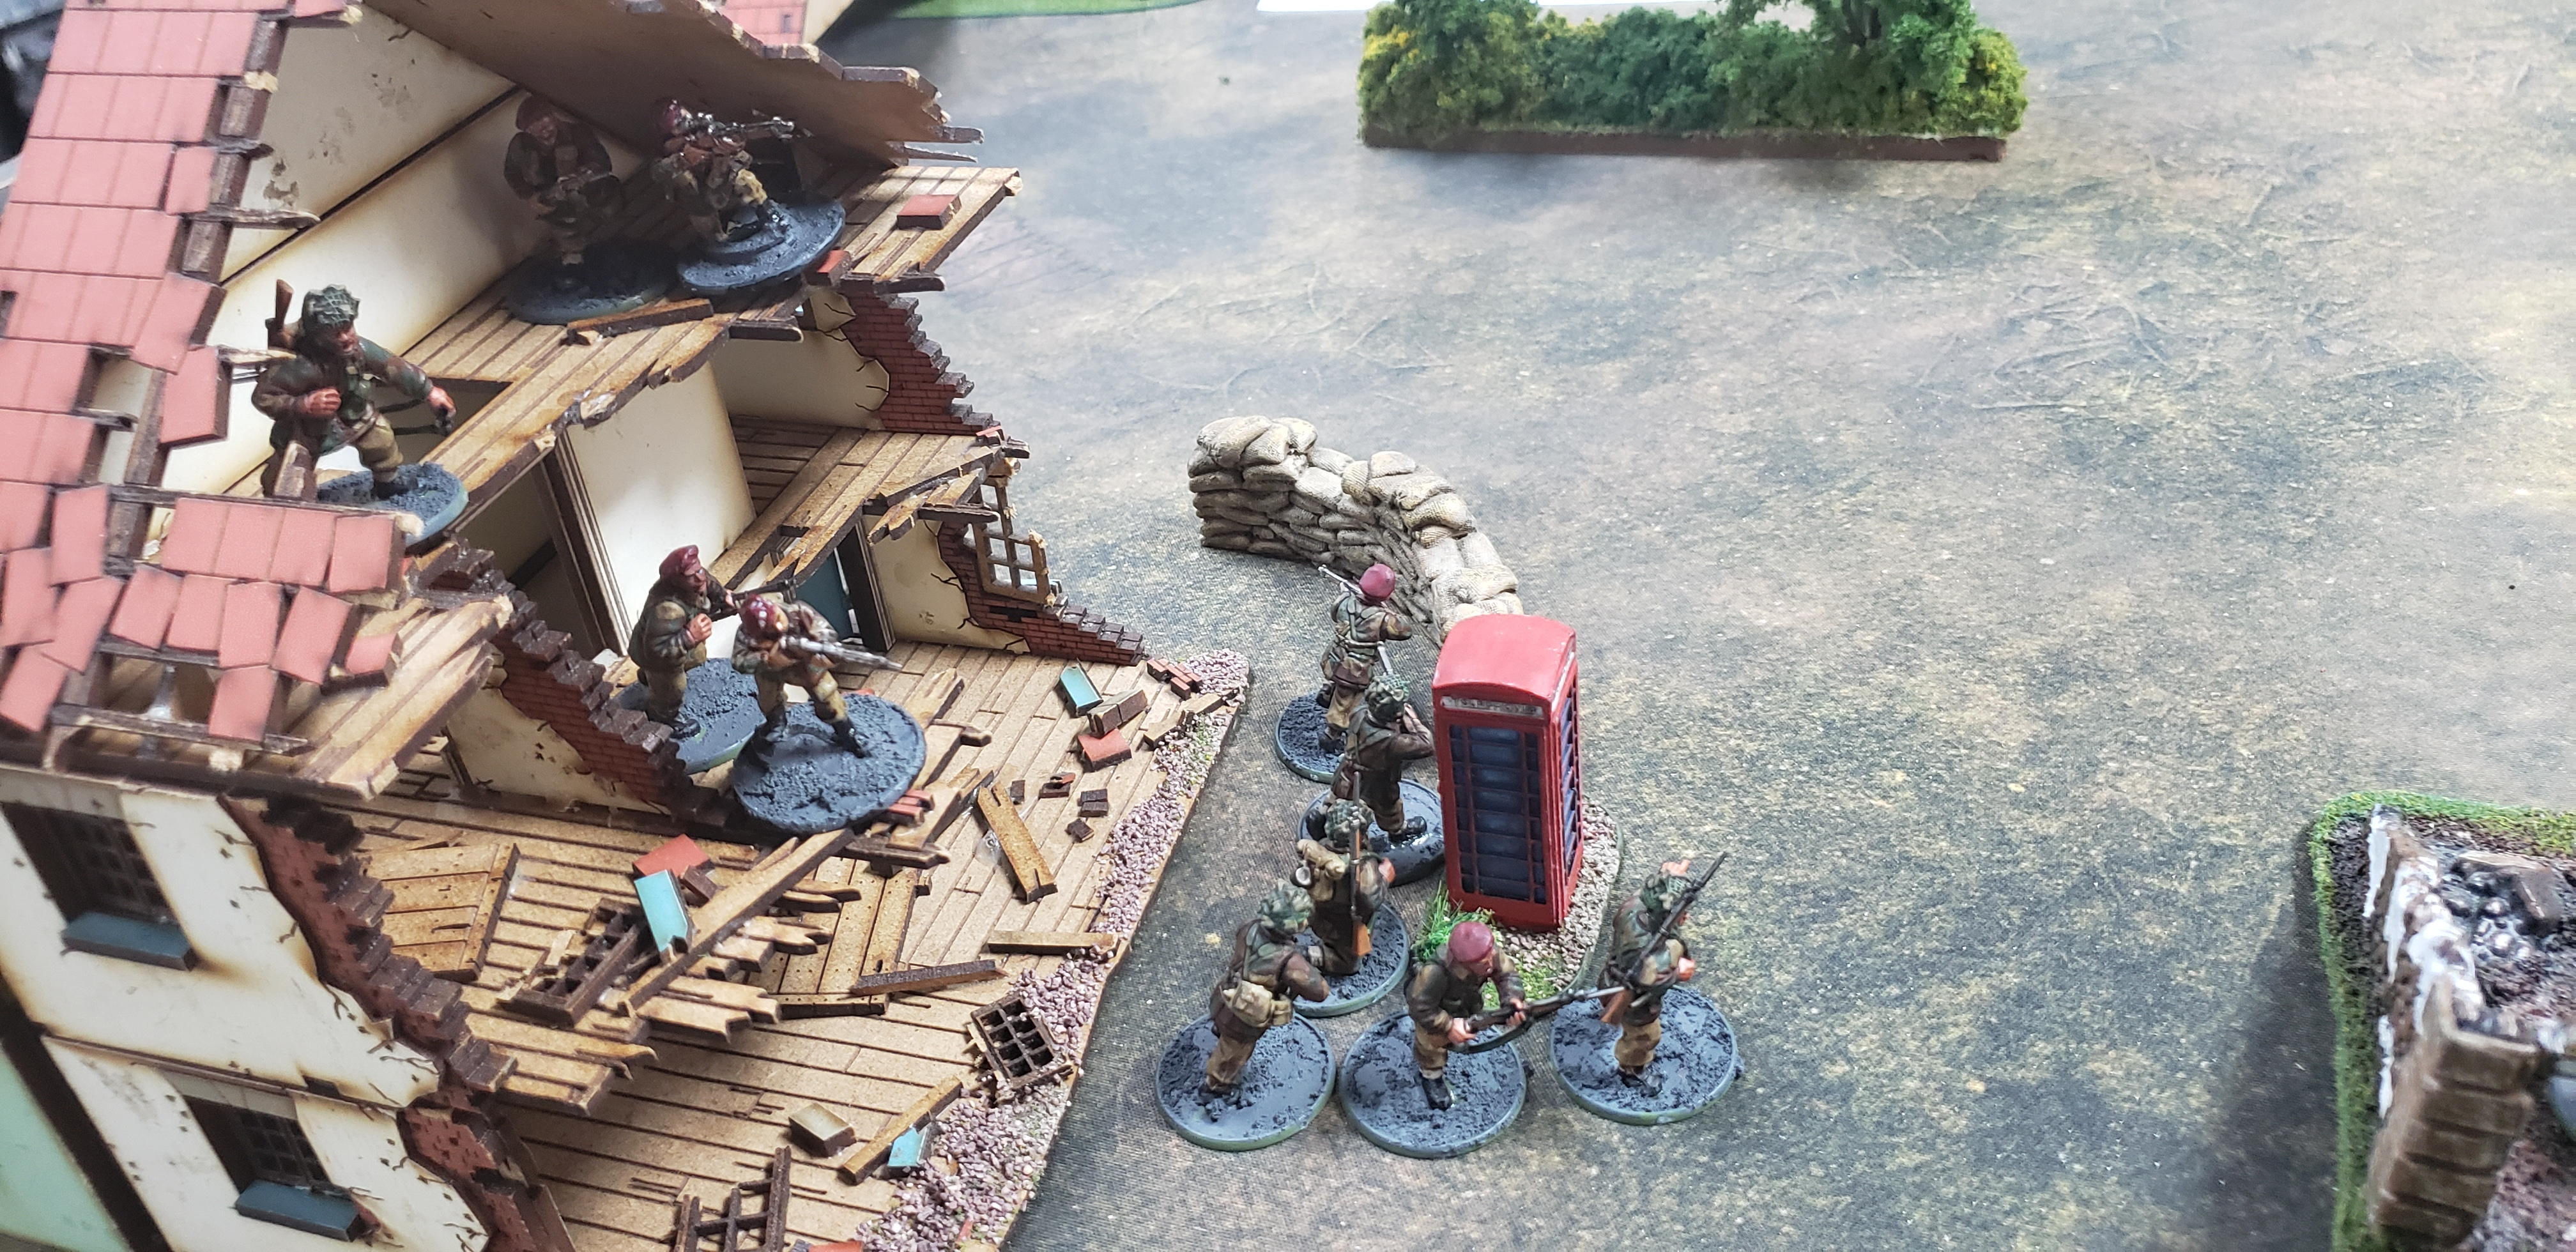 The Hounds versus 2nd SS Panzer Division in a fierce infantry engagement